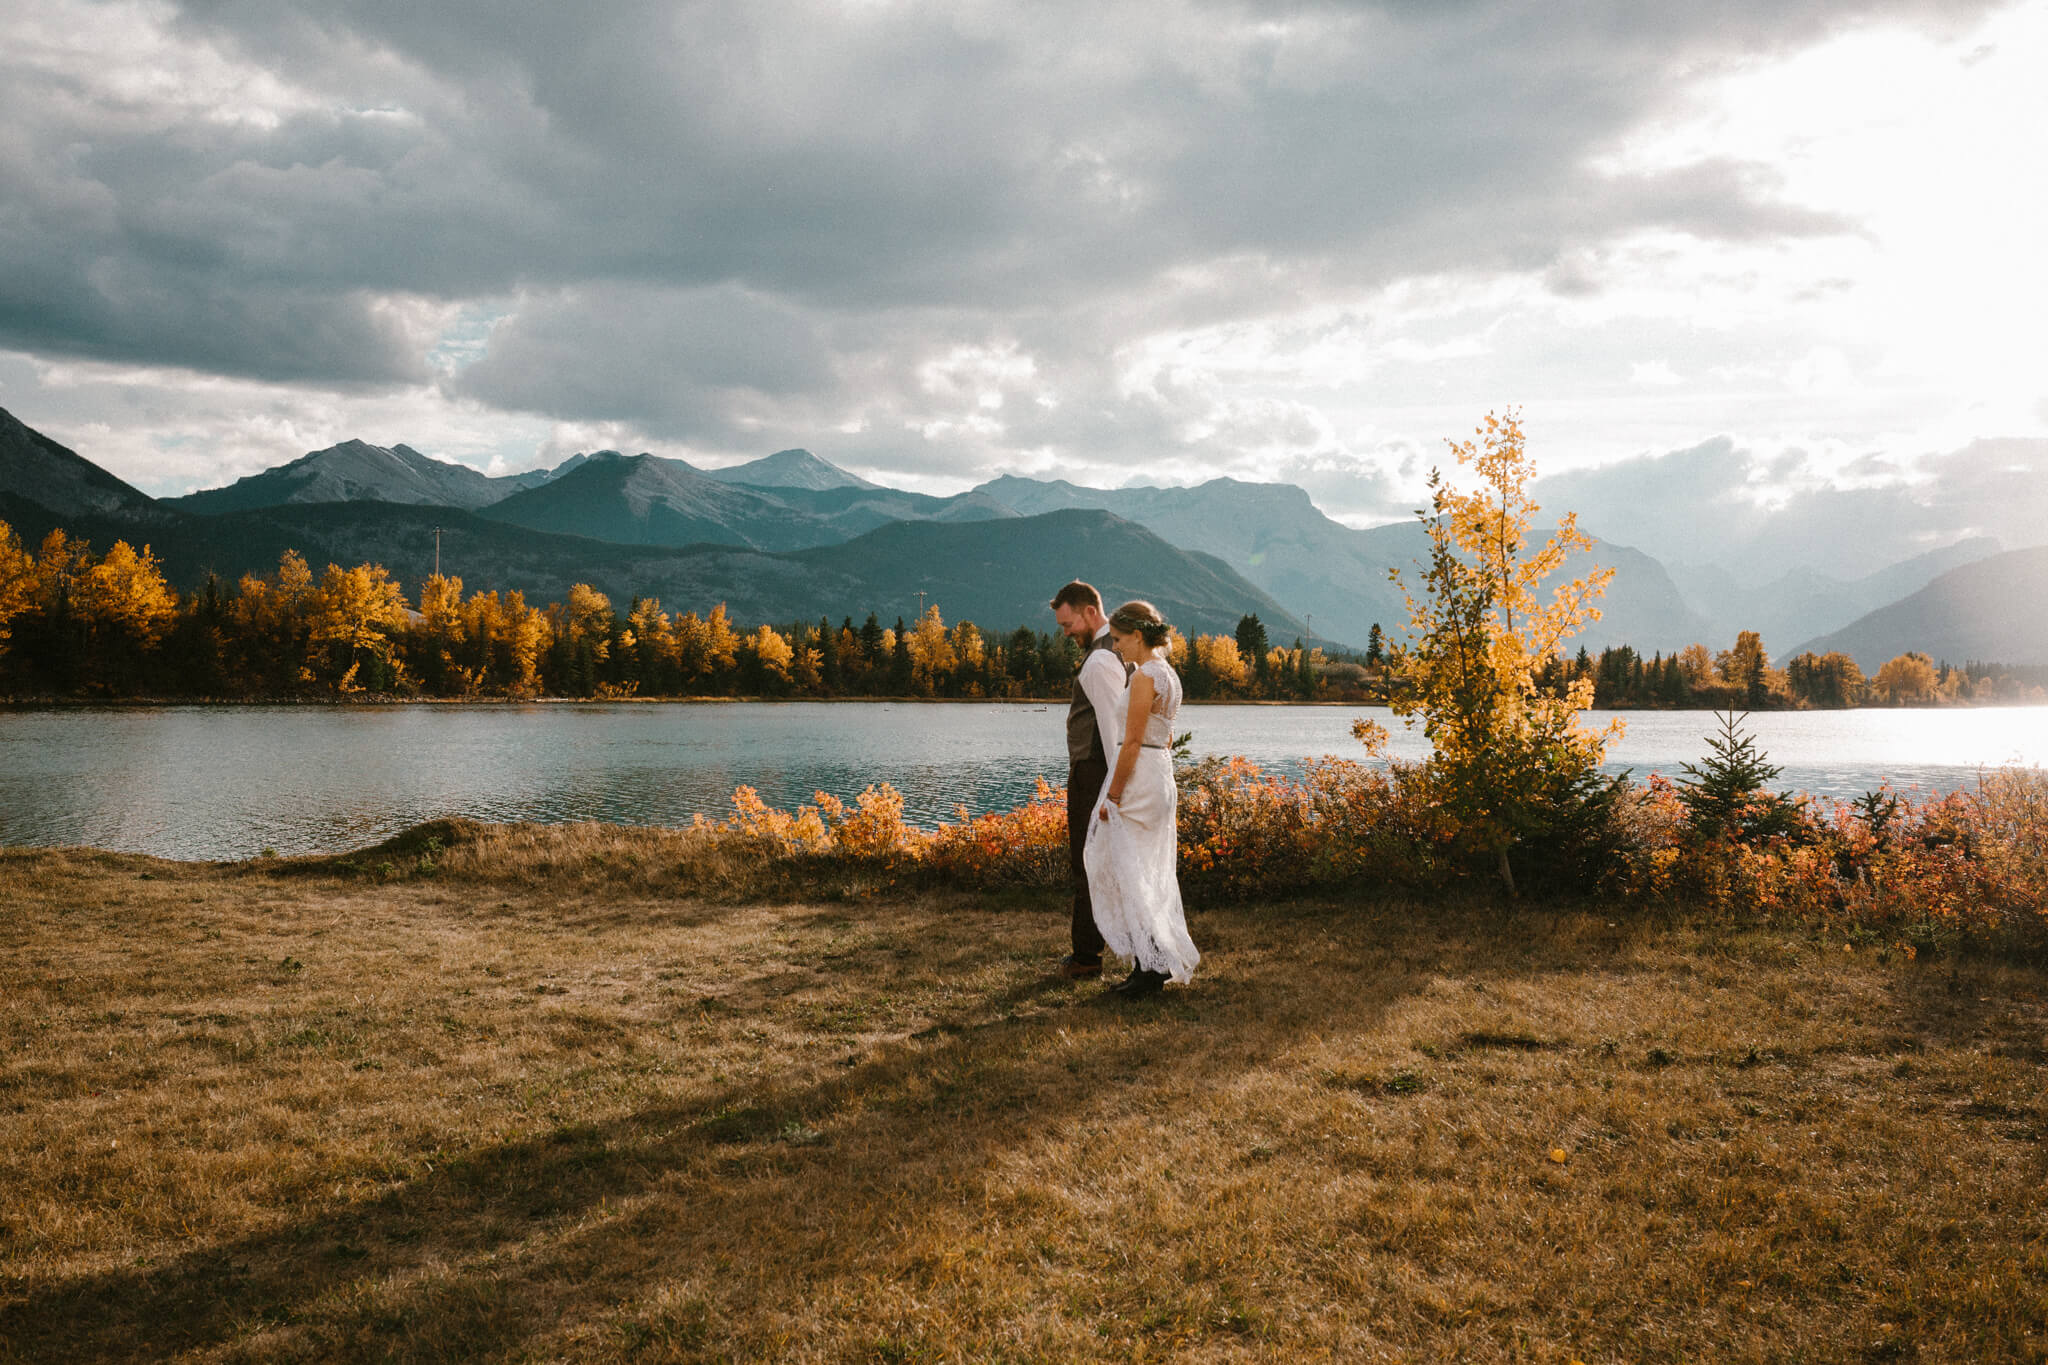 JK Kananaskis Wedding